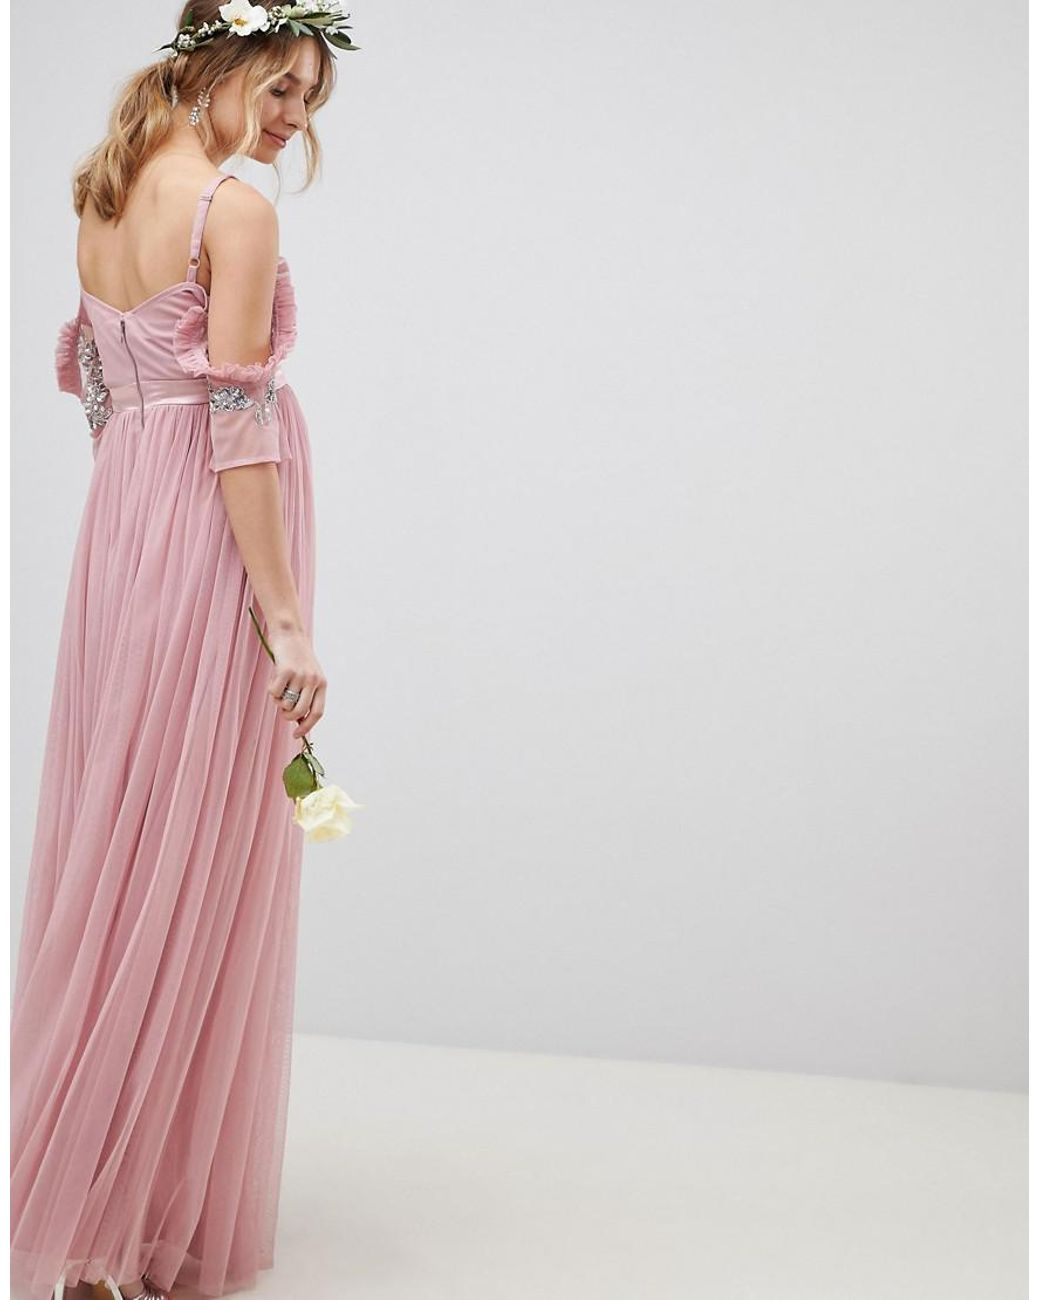 cc233d546495fd Maya Maternity Cold Shoulder Sequin Detail Tulle Maxi Dress With Ruffle  Detail in Pink - Lyst